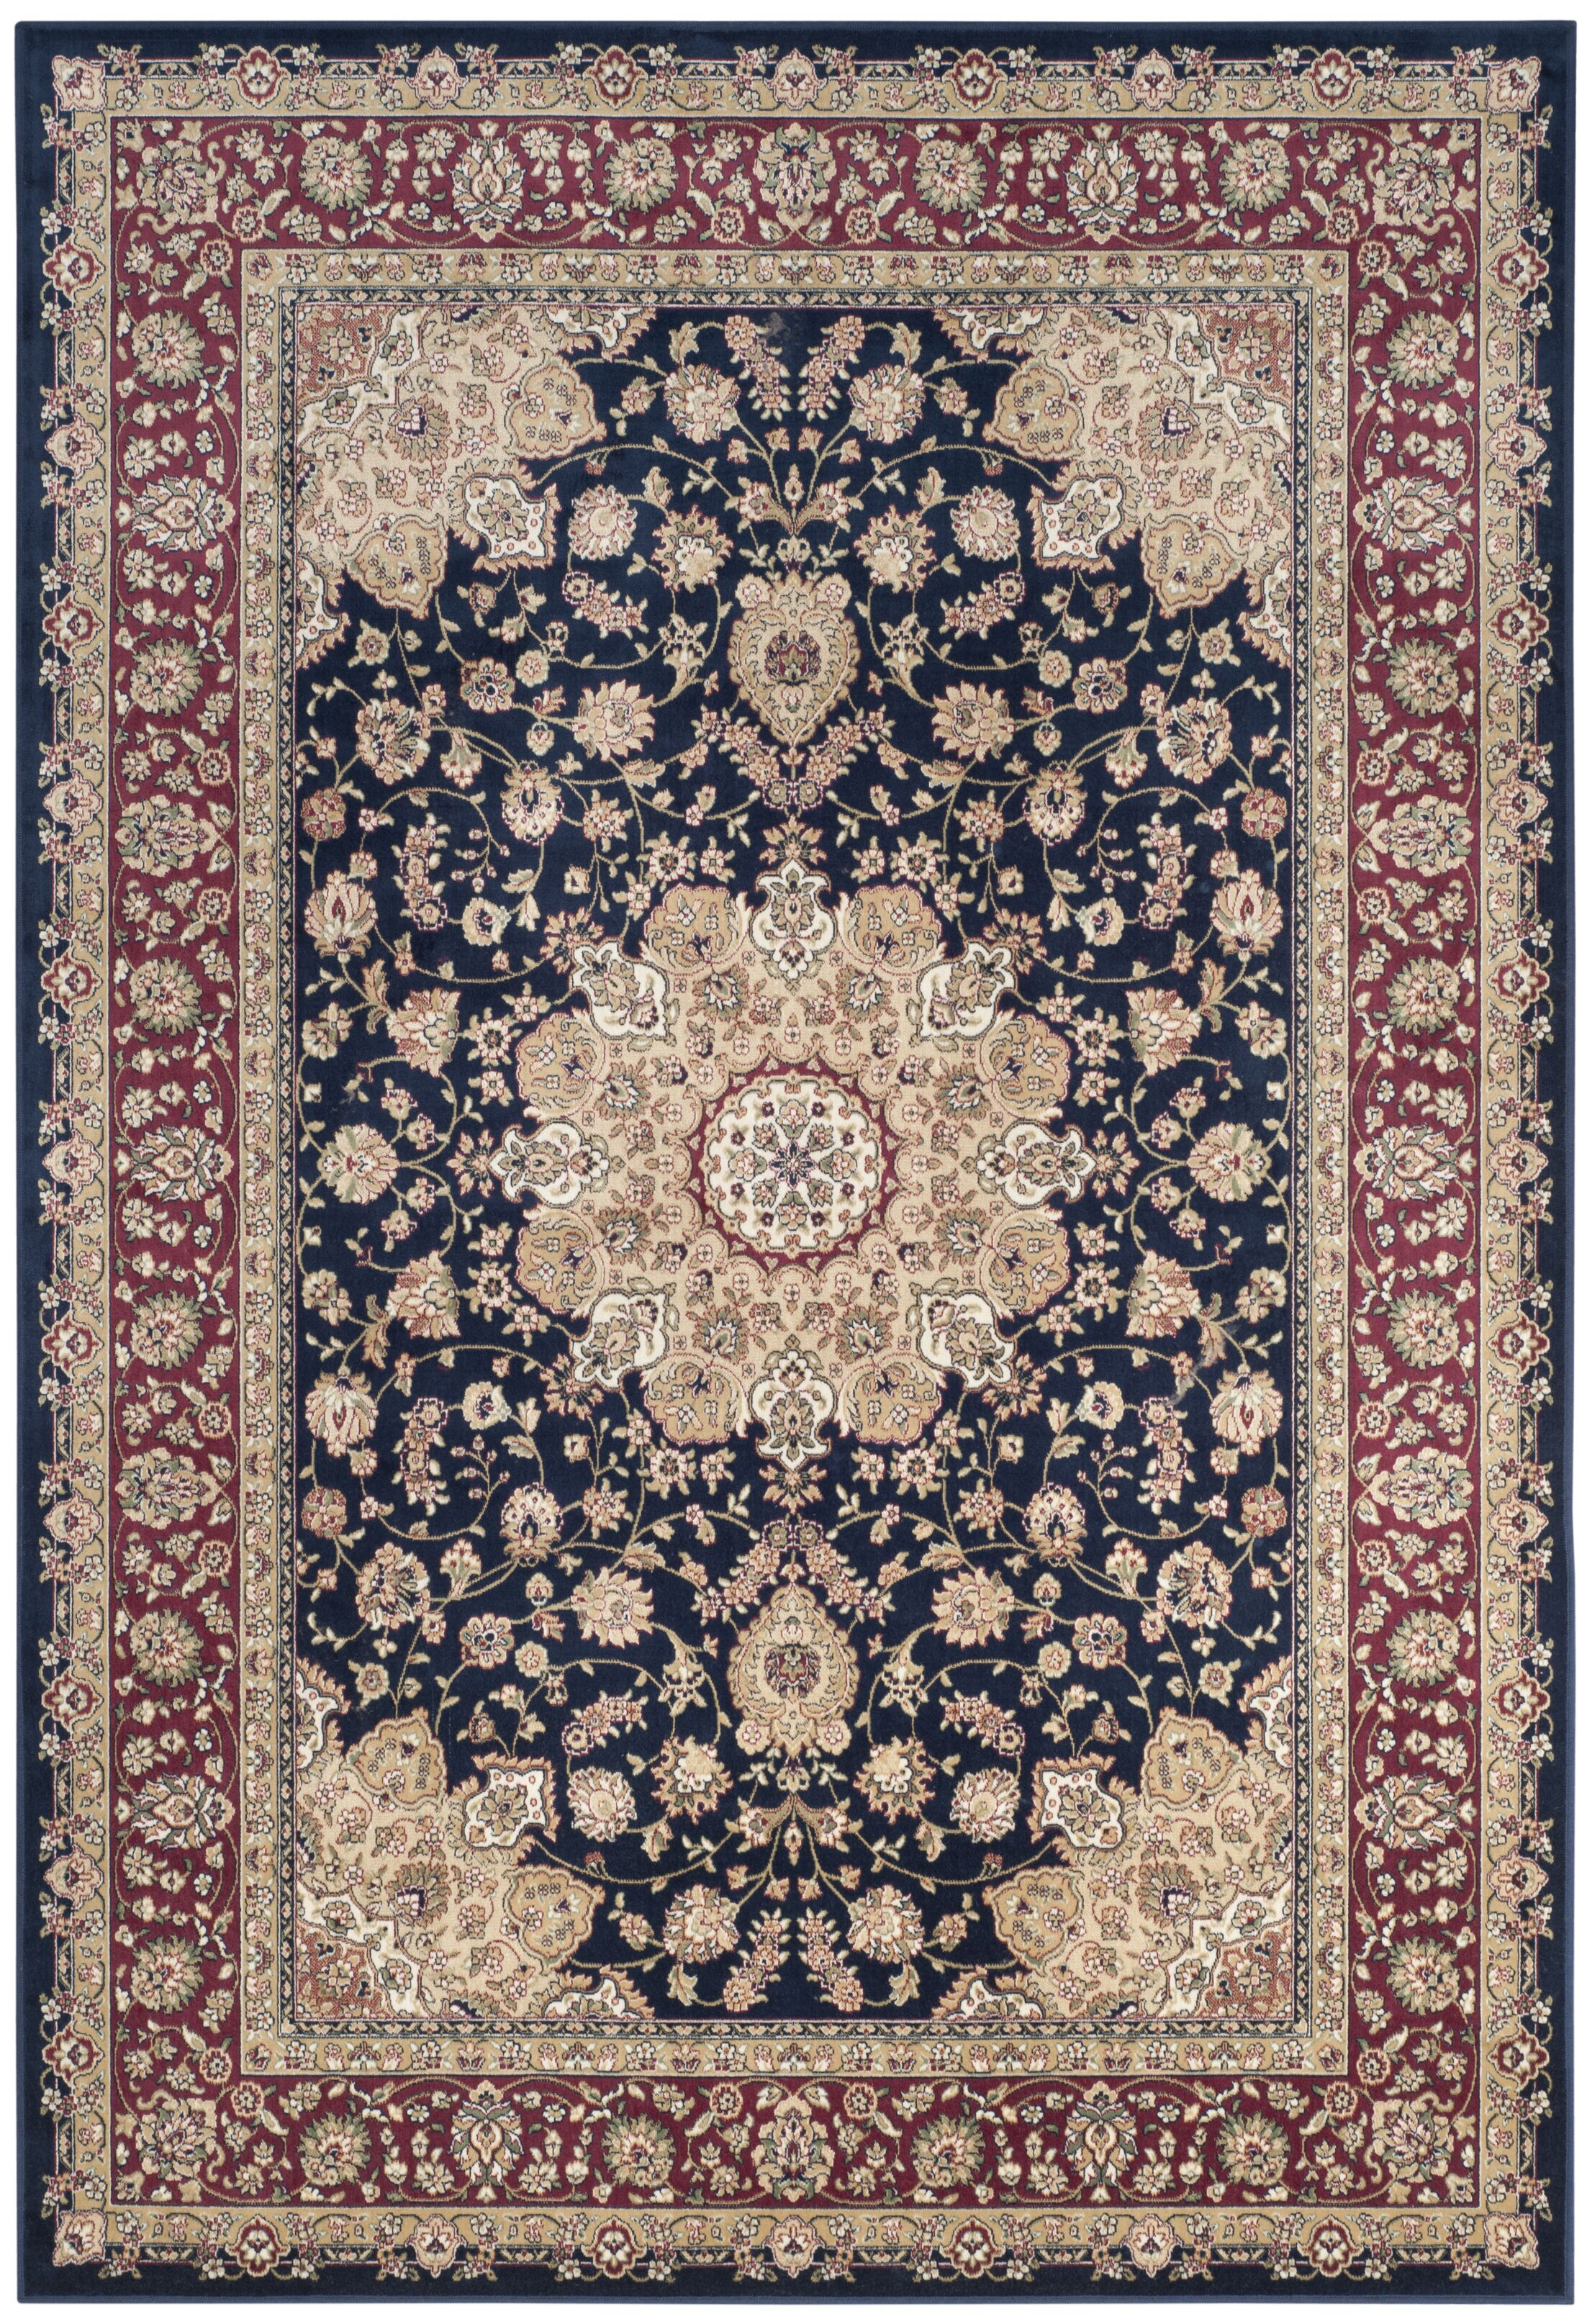 Carolus Red/Navy Area Rug Rug Size: Rectangle 8' x 11'6